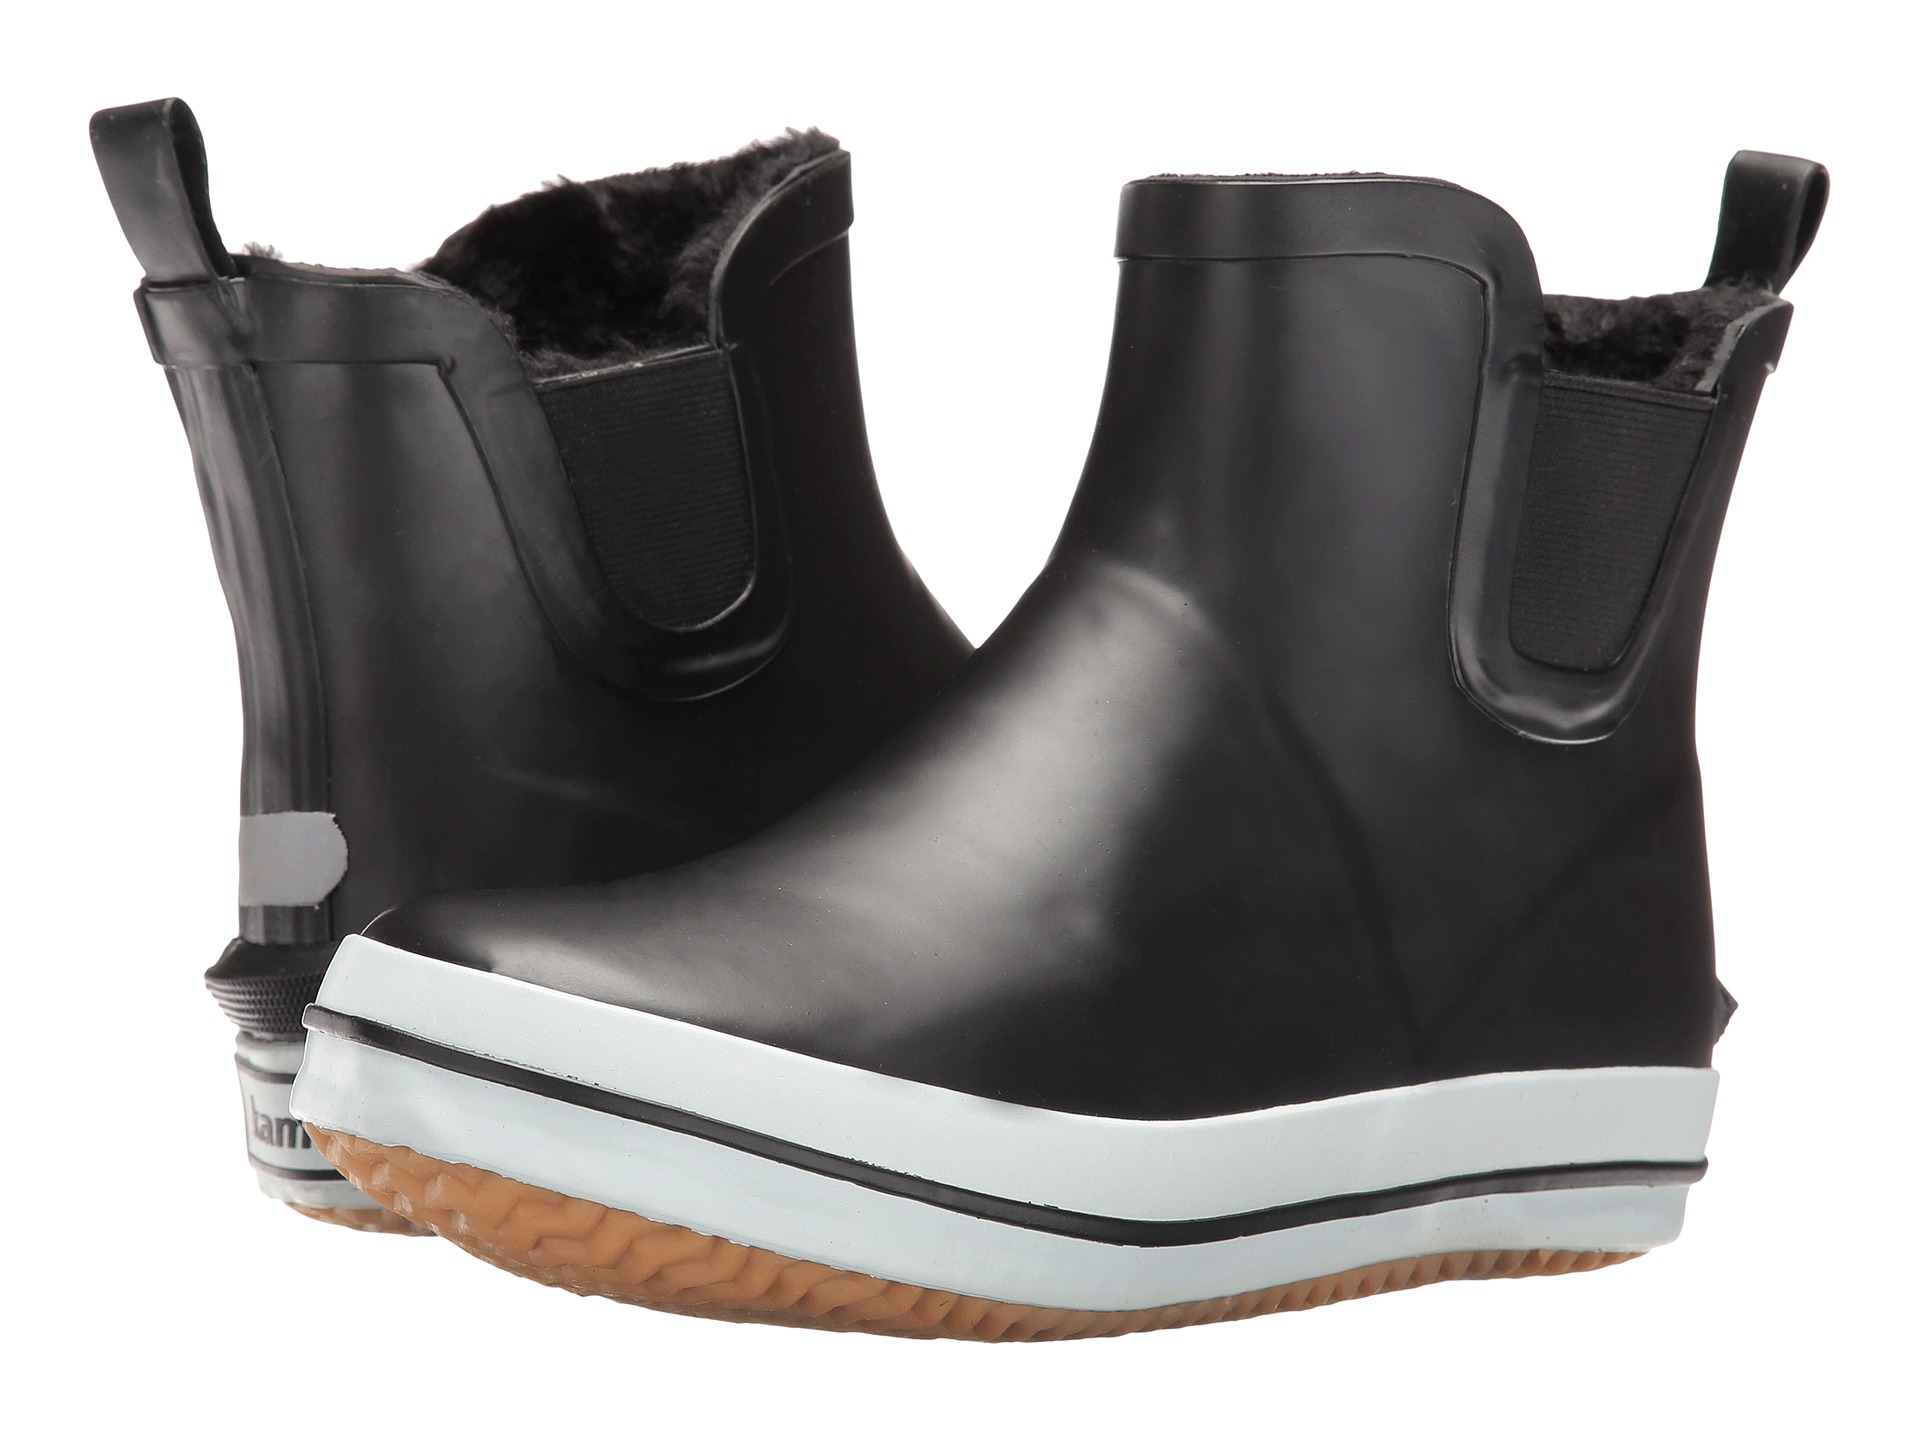 Stylish Rain Boots to Conquer Any Rainy Day - FabFitFun